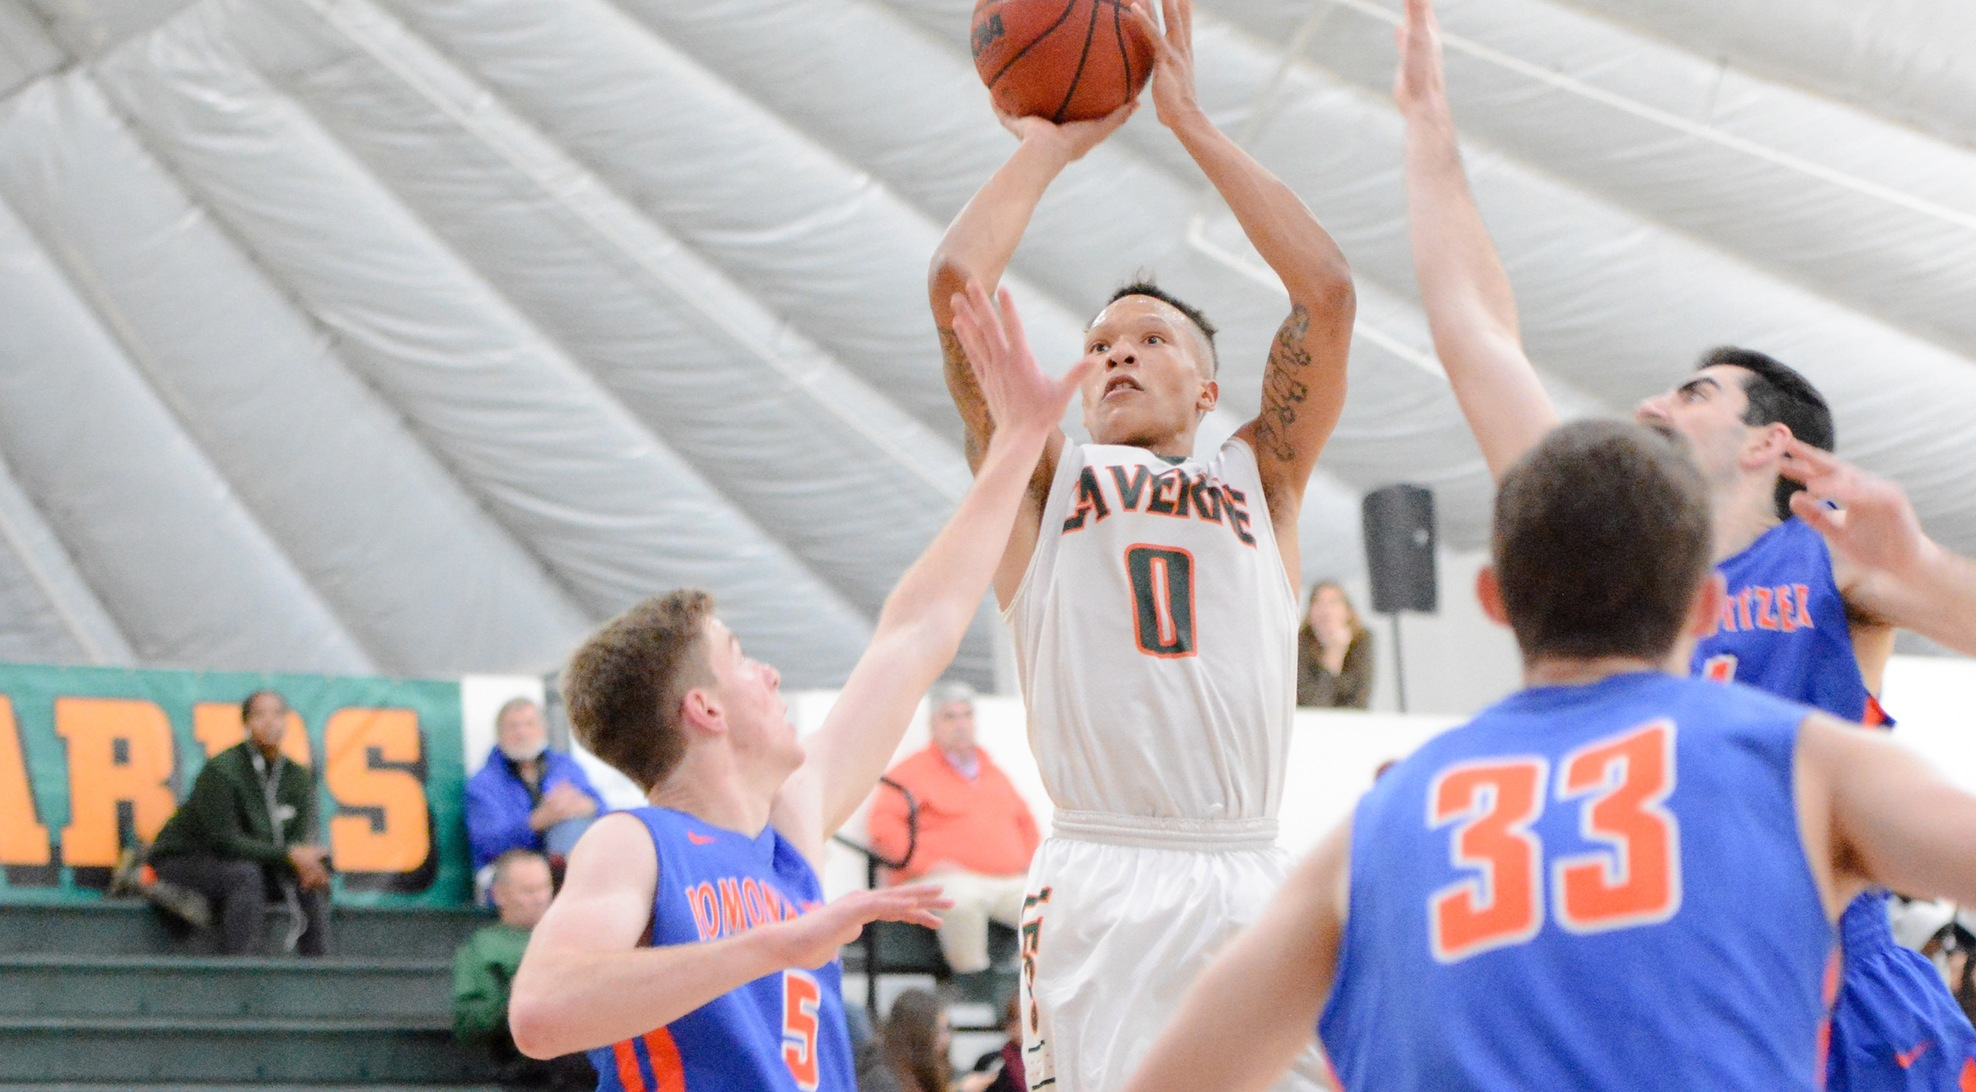 Arnold reaches 1,000 points, powers La Verne past Whittier